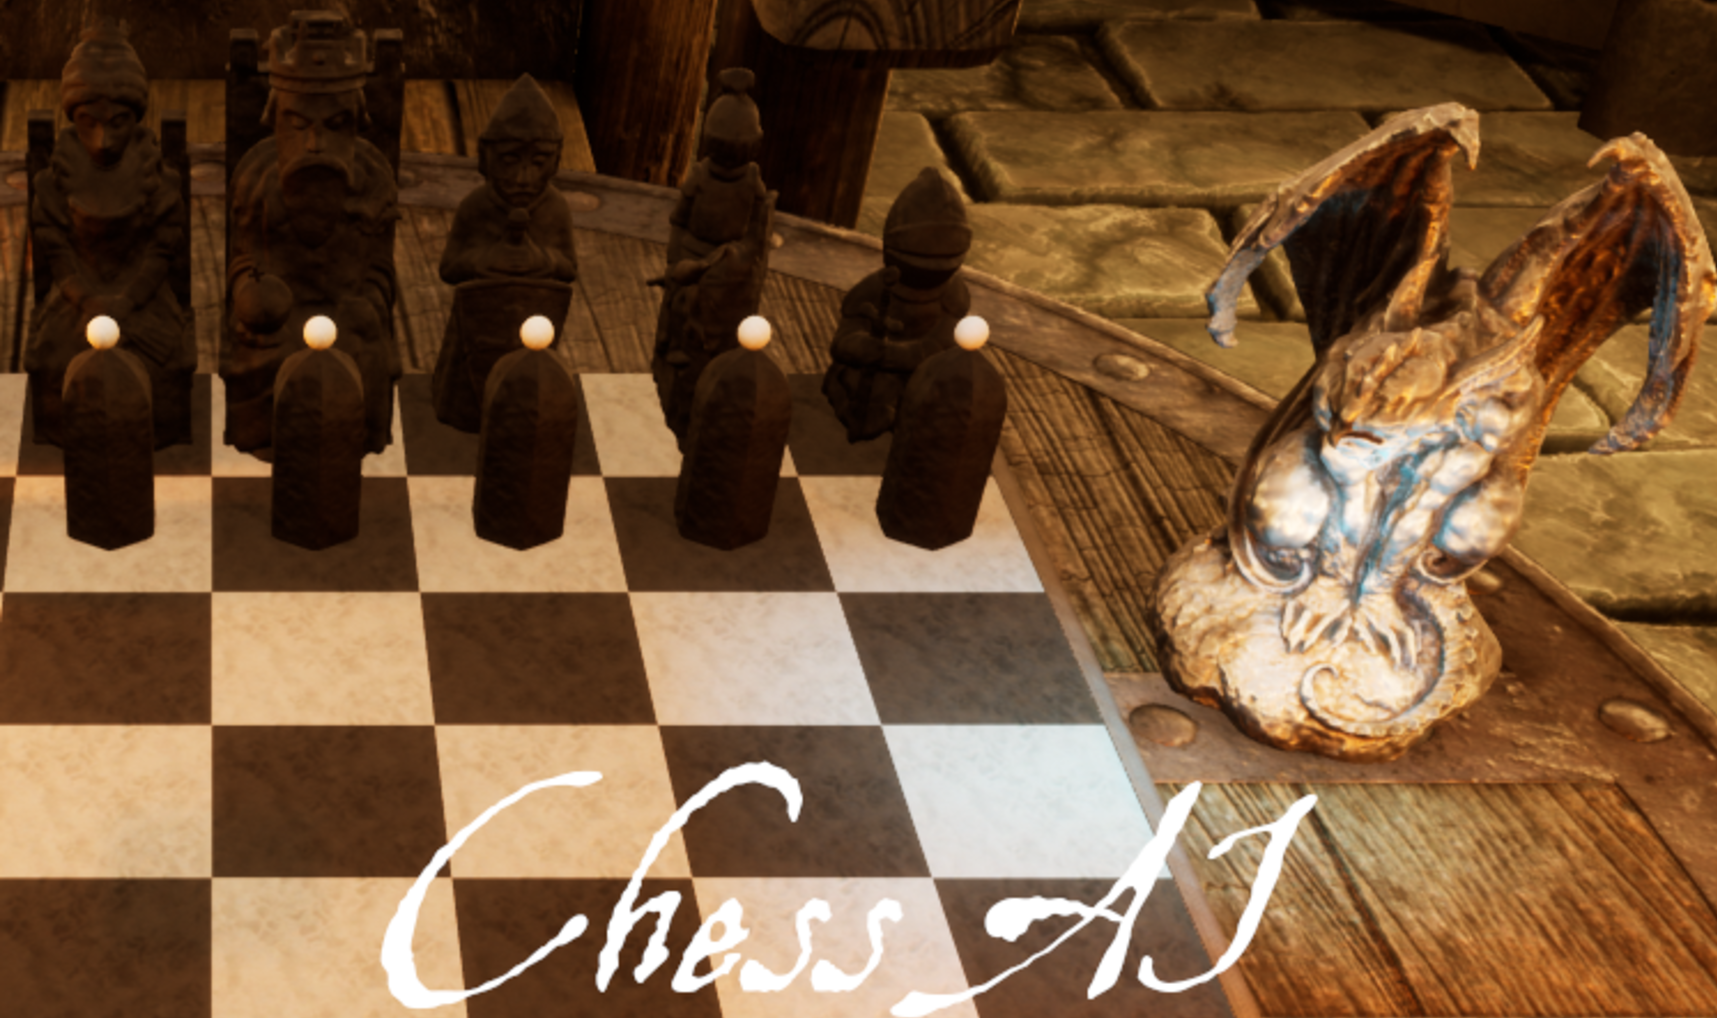 Chess AI: Min Max - University project done EPIC by FerlinDev